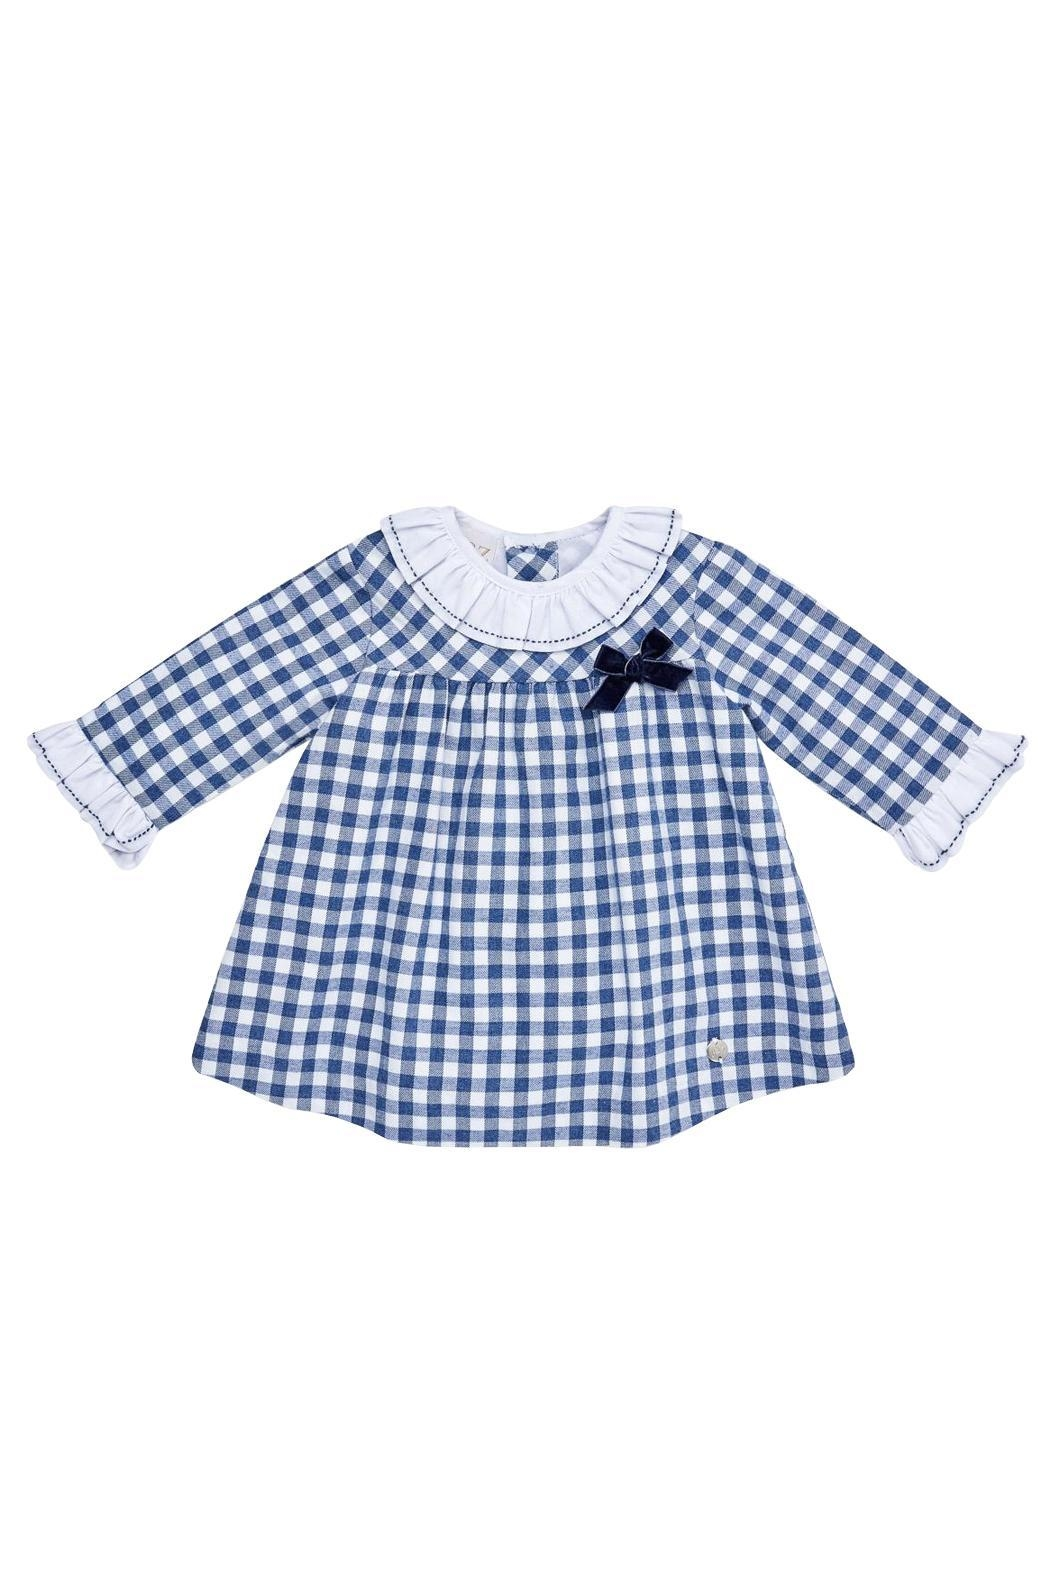 Paz Rodriguez Gingham Dress. - Front Cropped Image